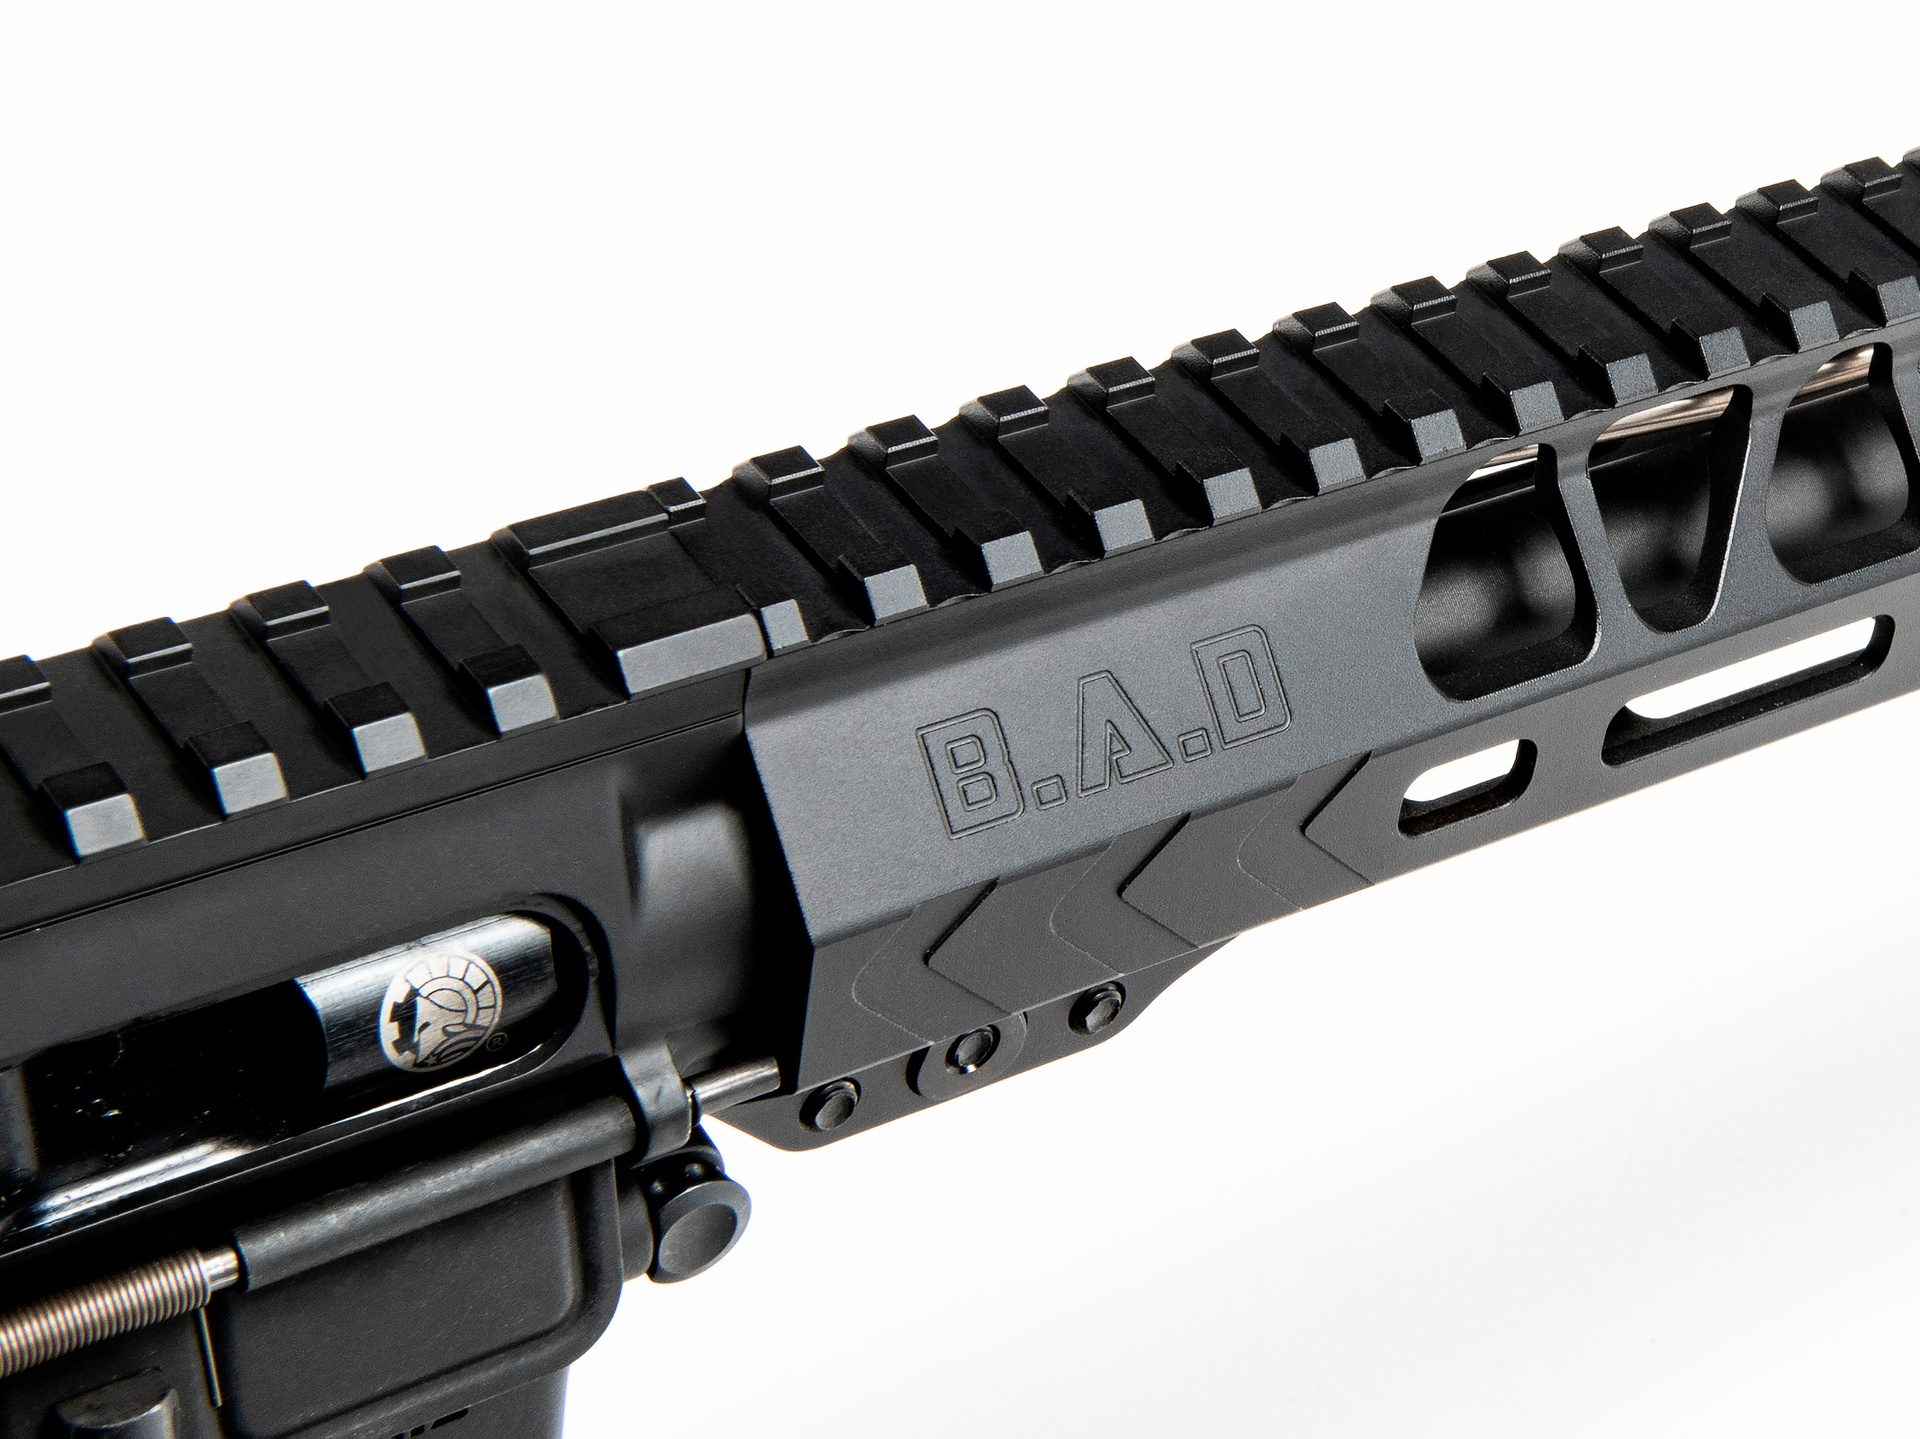 BATTLEARMS™ WORKHORSE 15in Free Float Rail